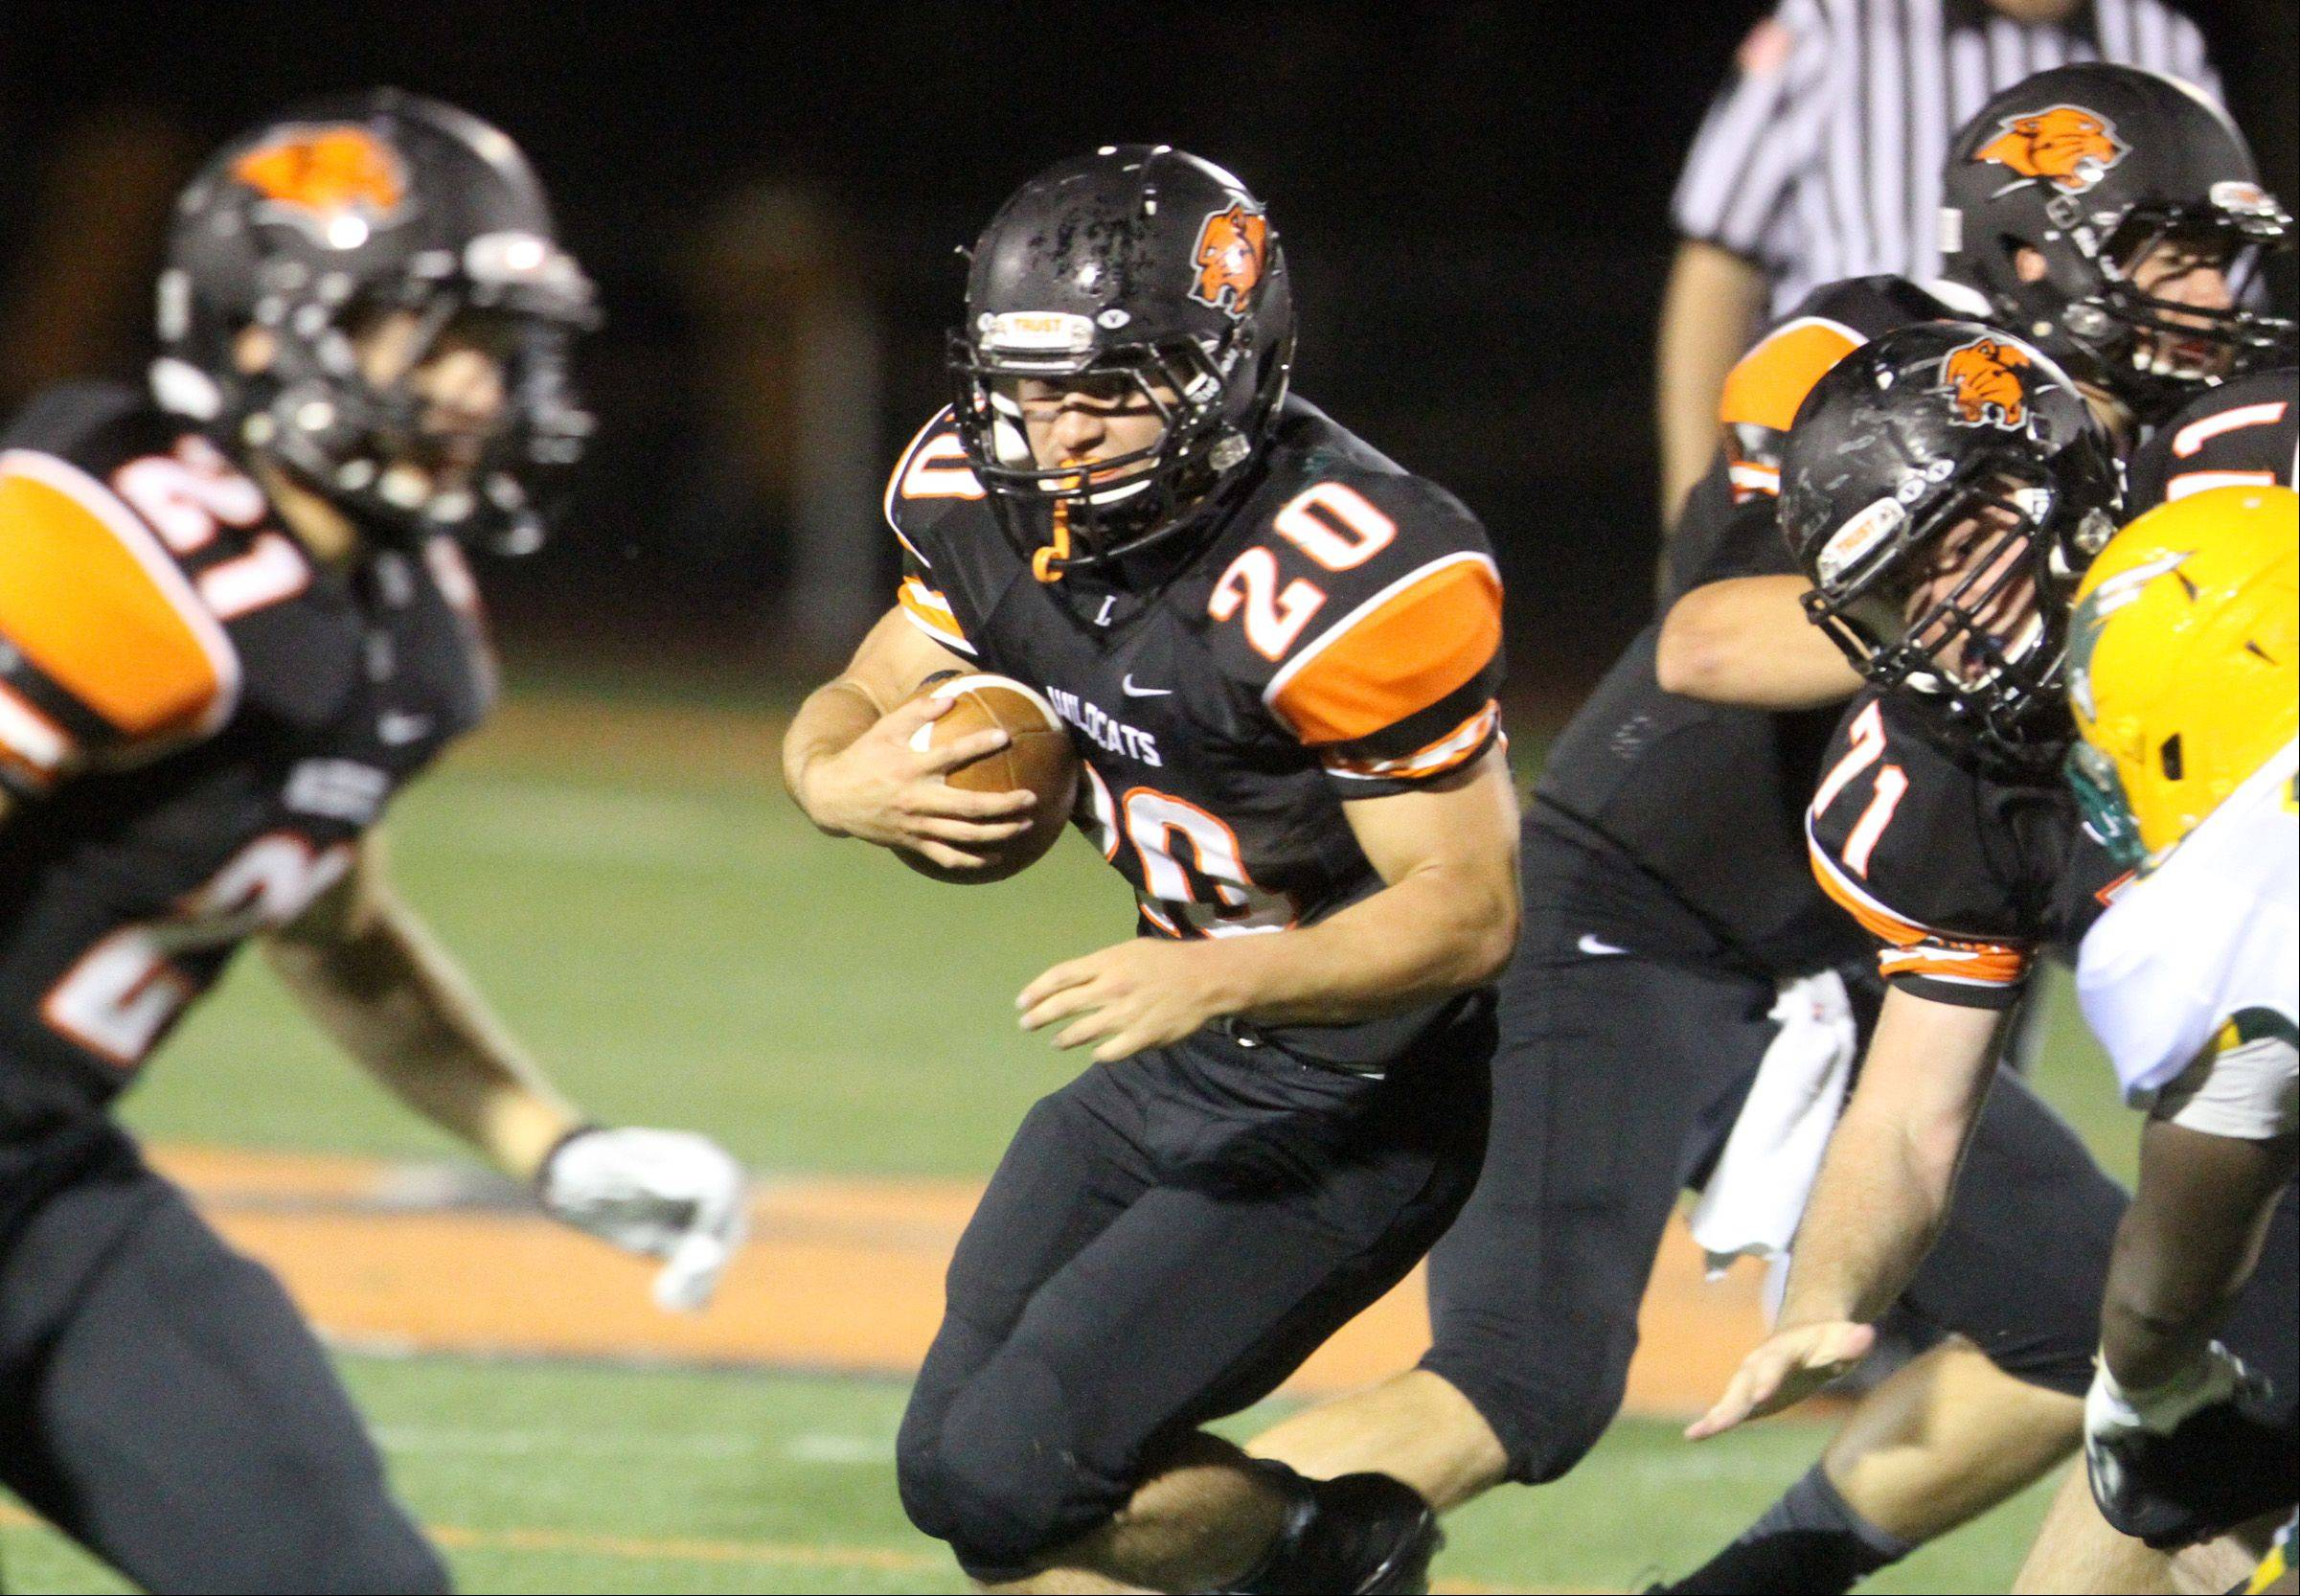 Images: Libertyville vs. Stevenson football